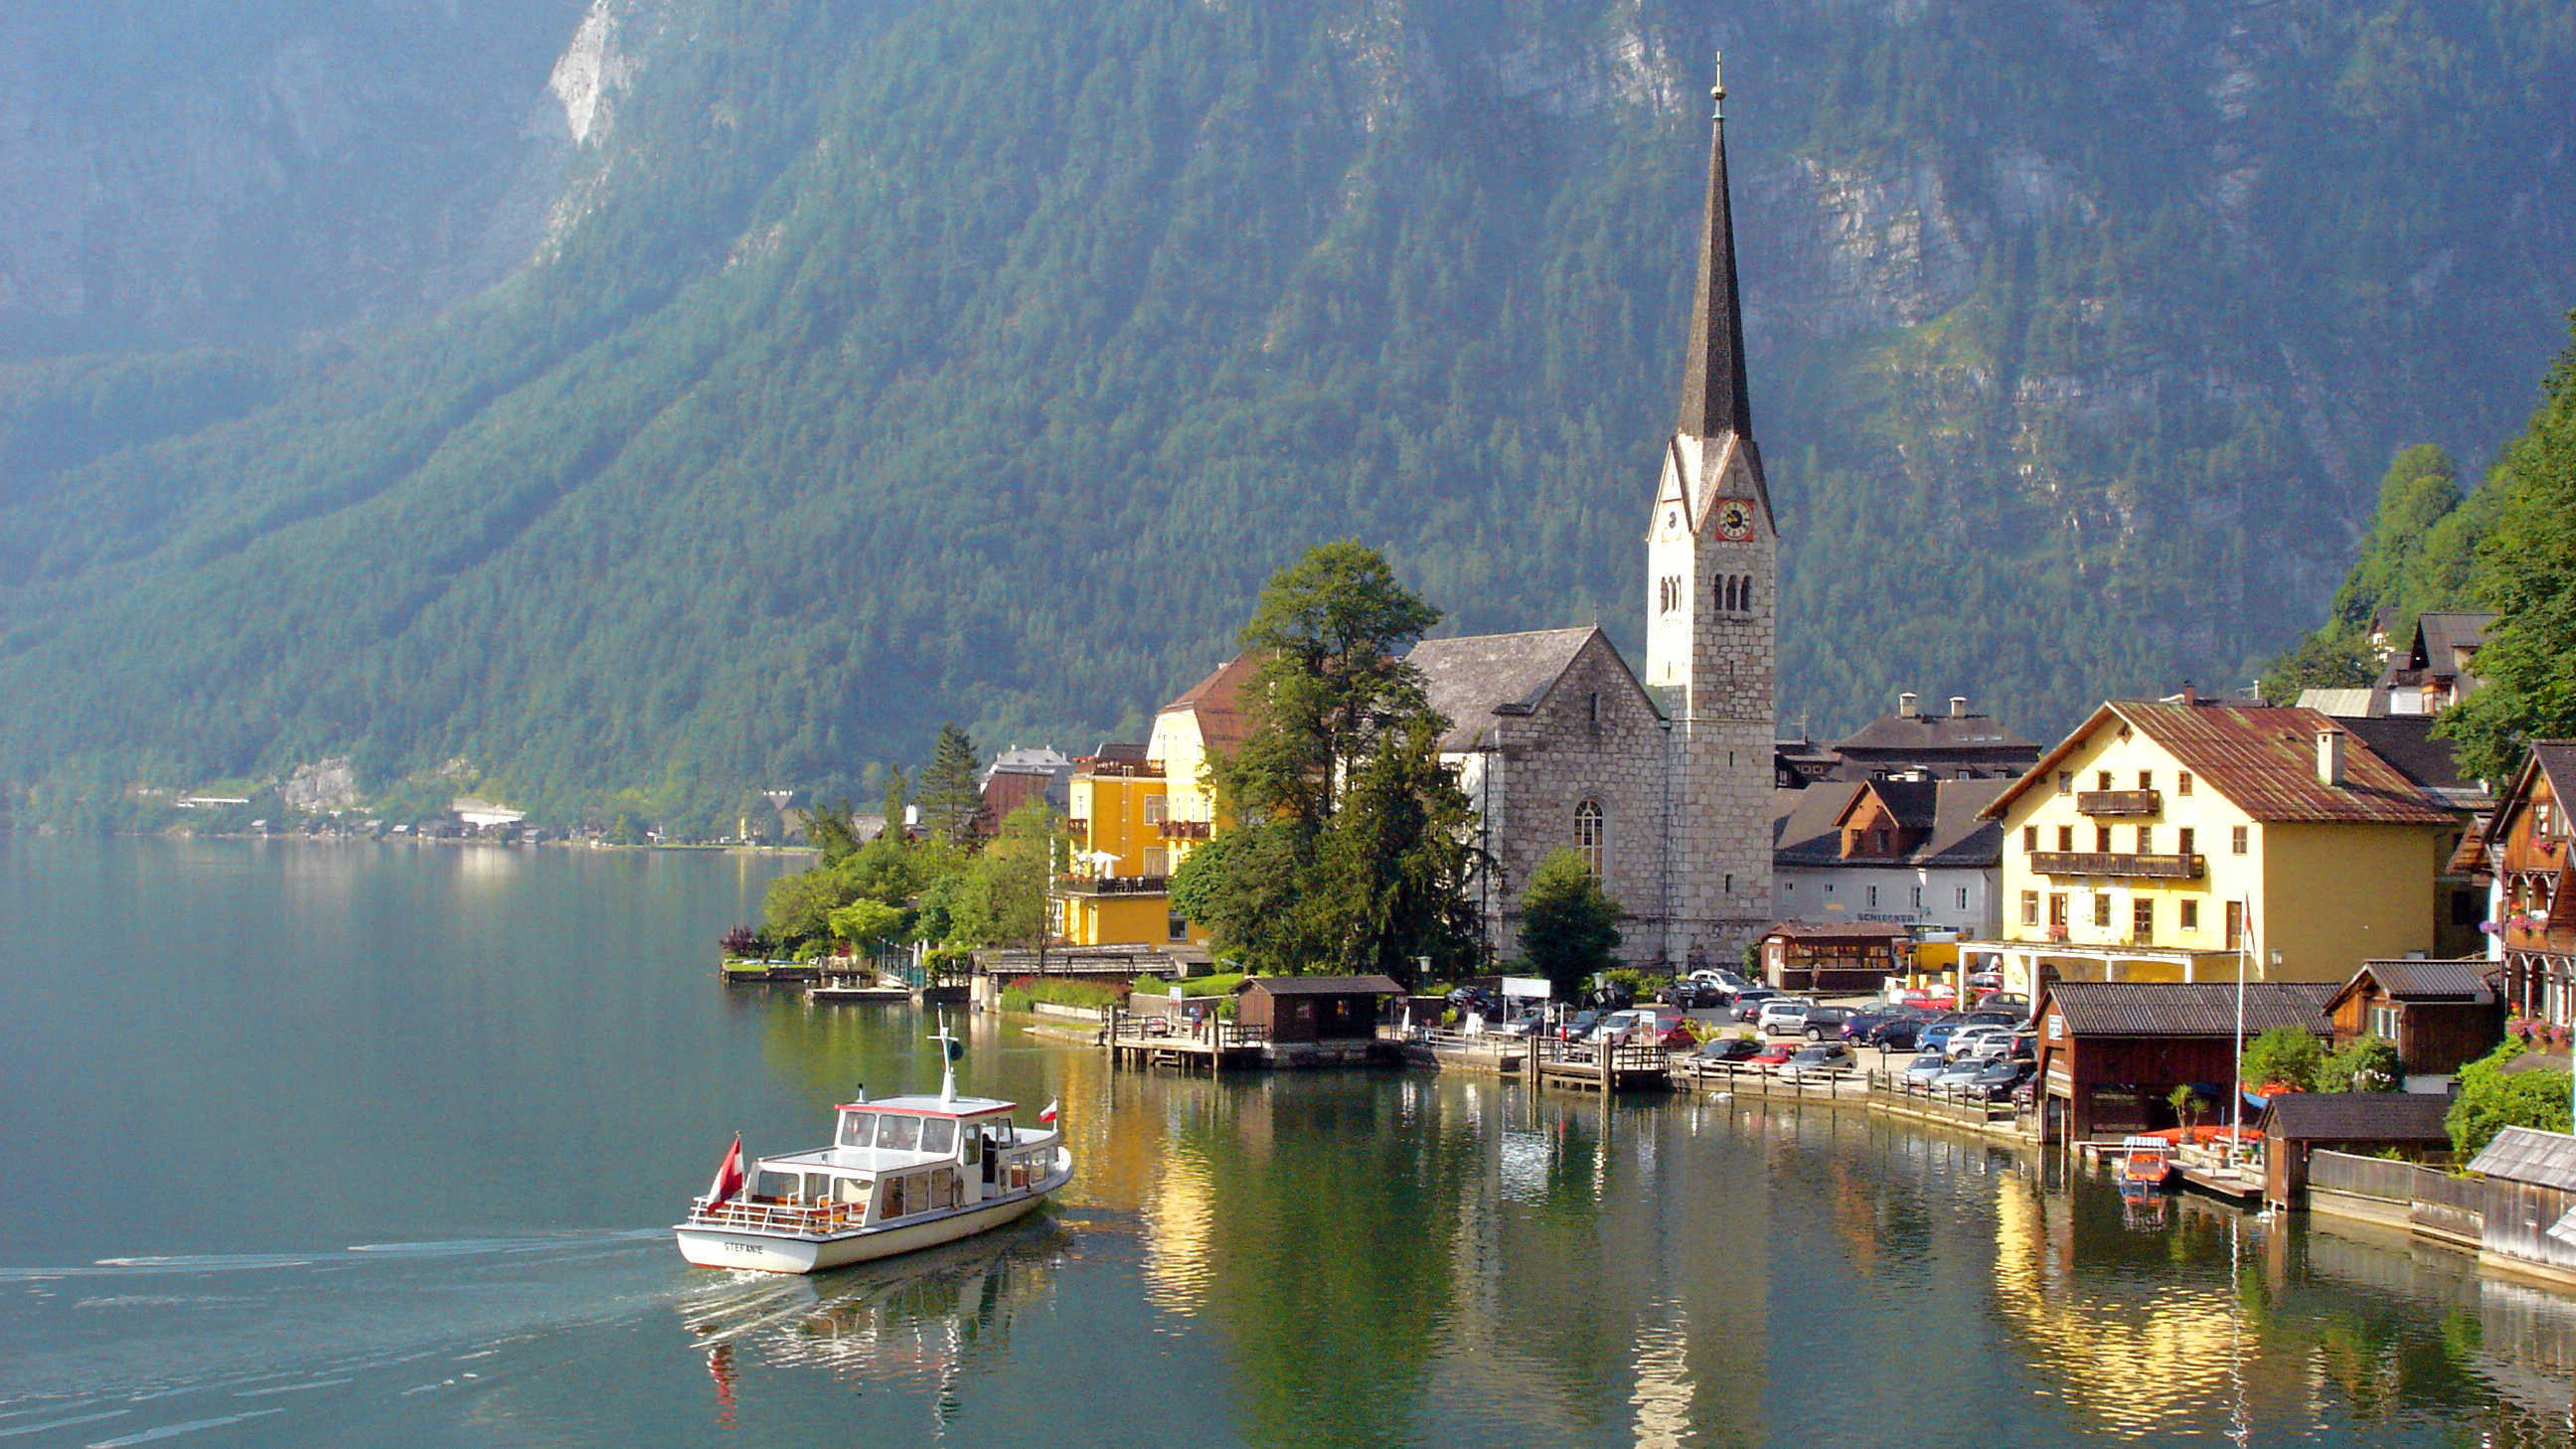 View of the lake-front of Hallstatt, Austria